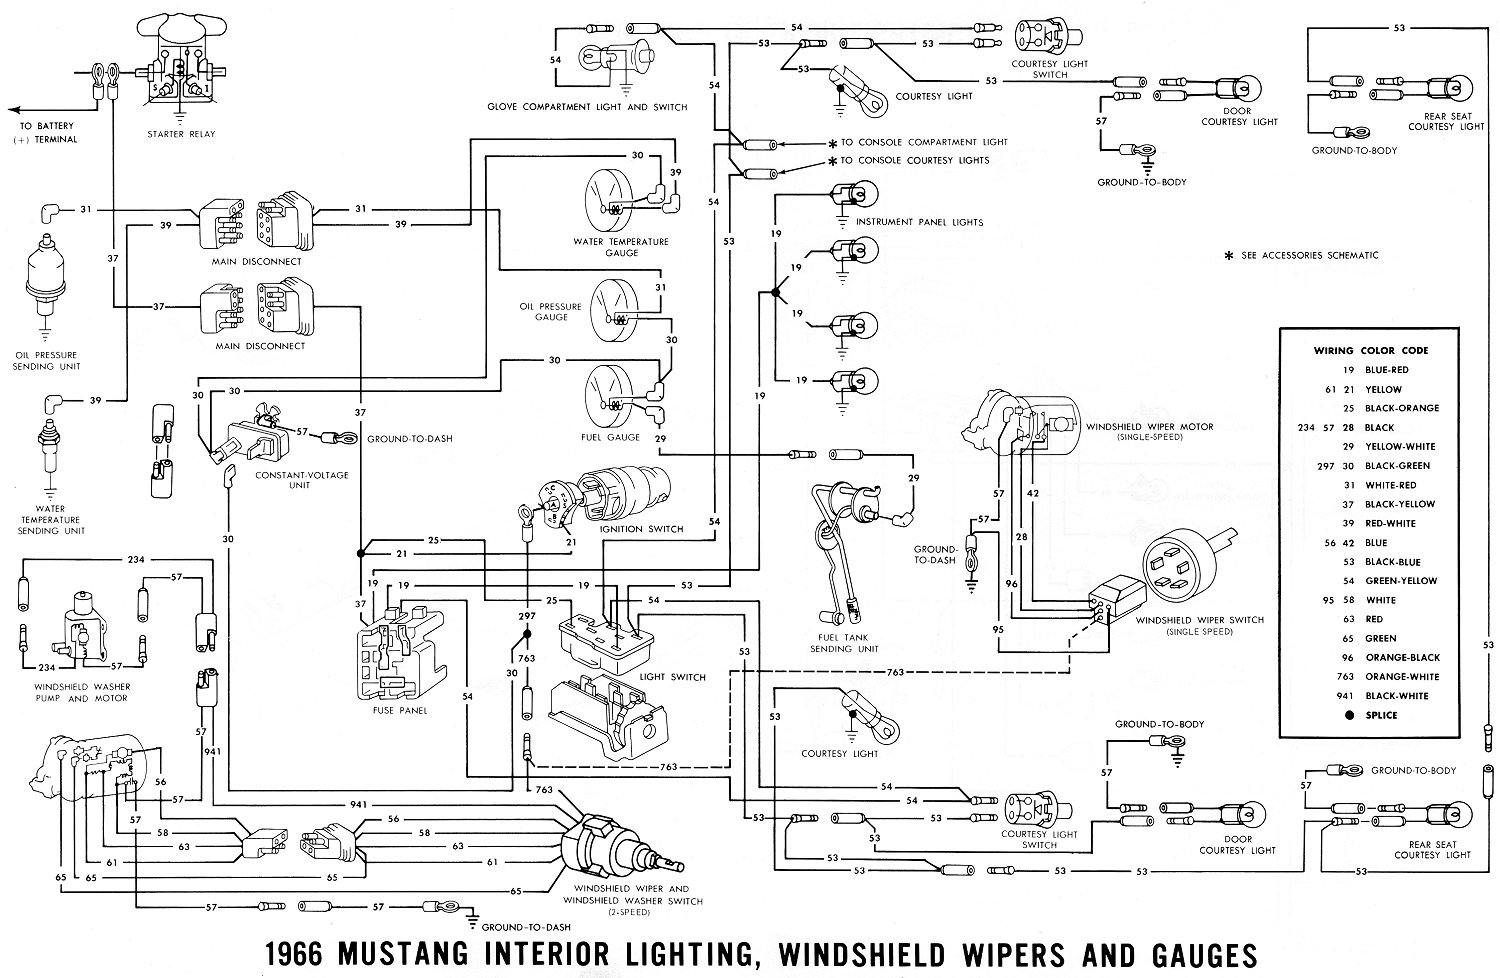 66inter1 1966 mustang wiring diagrams average joe restoration 1965 mustang ignition switch wiring diagram at gsmx.co